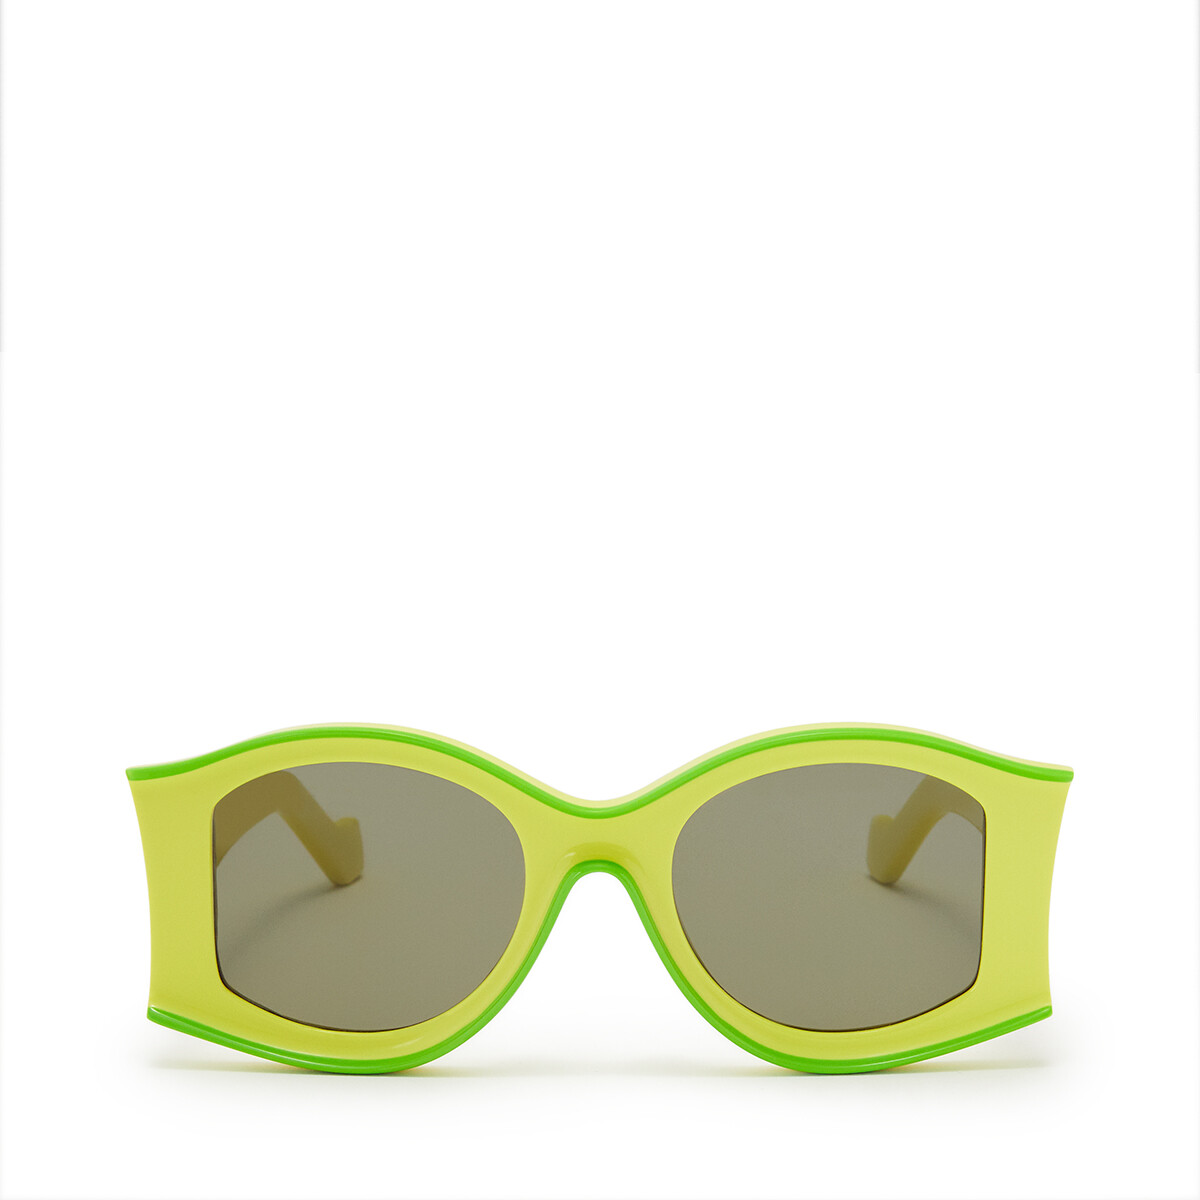 LOEWE Large Pula's Ibiza Sunglasses In Acetate Neon Yellow/Neon Green front